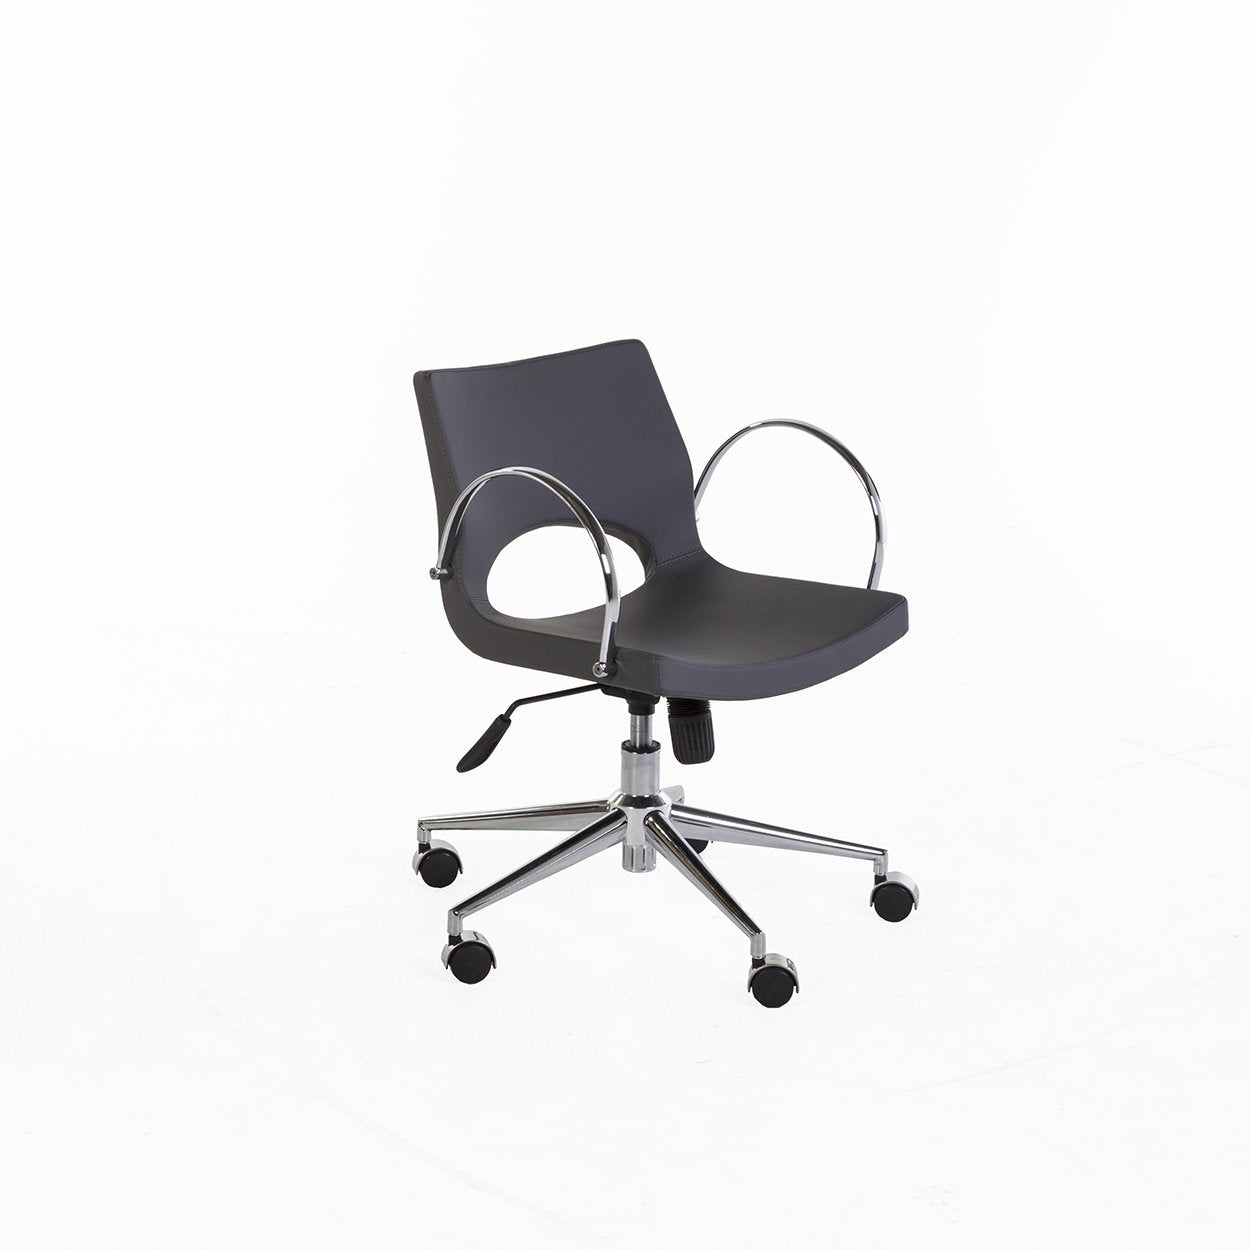 [FJC2032GREY] Baccoli Office Chair